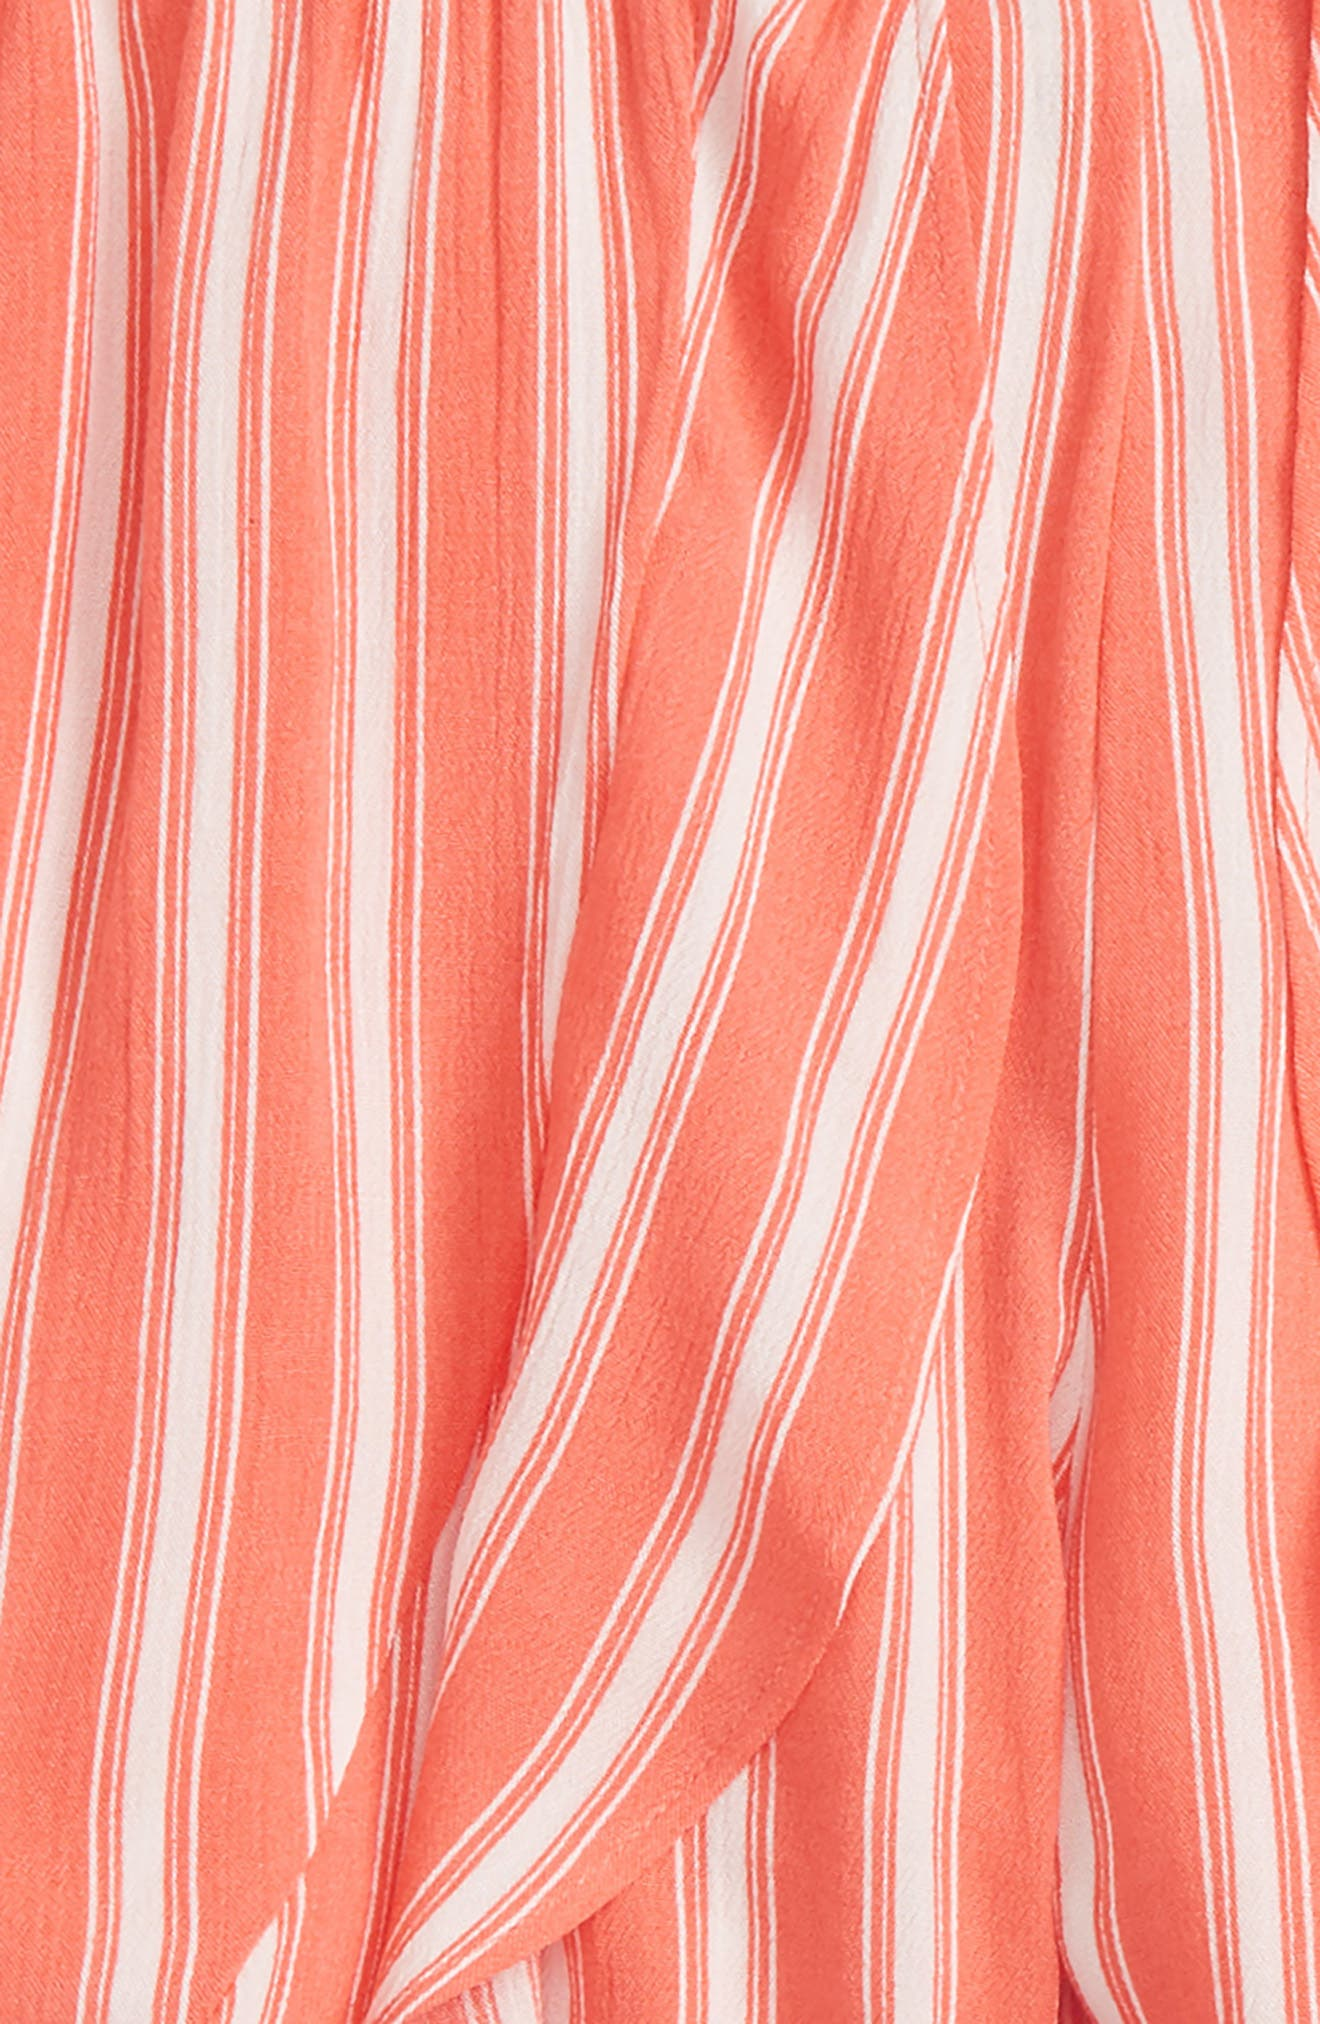 Stripe Walk Through Skirt,                             Alternate thumbnail 2, color,                             Coral/ Ivory